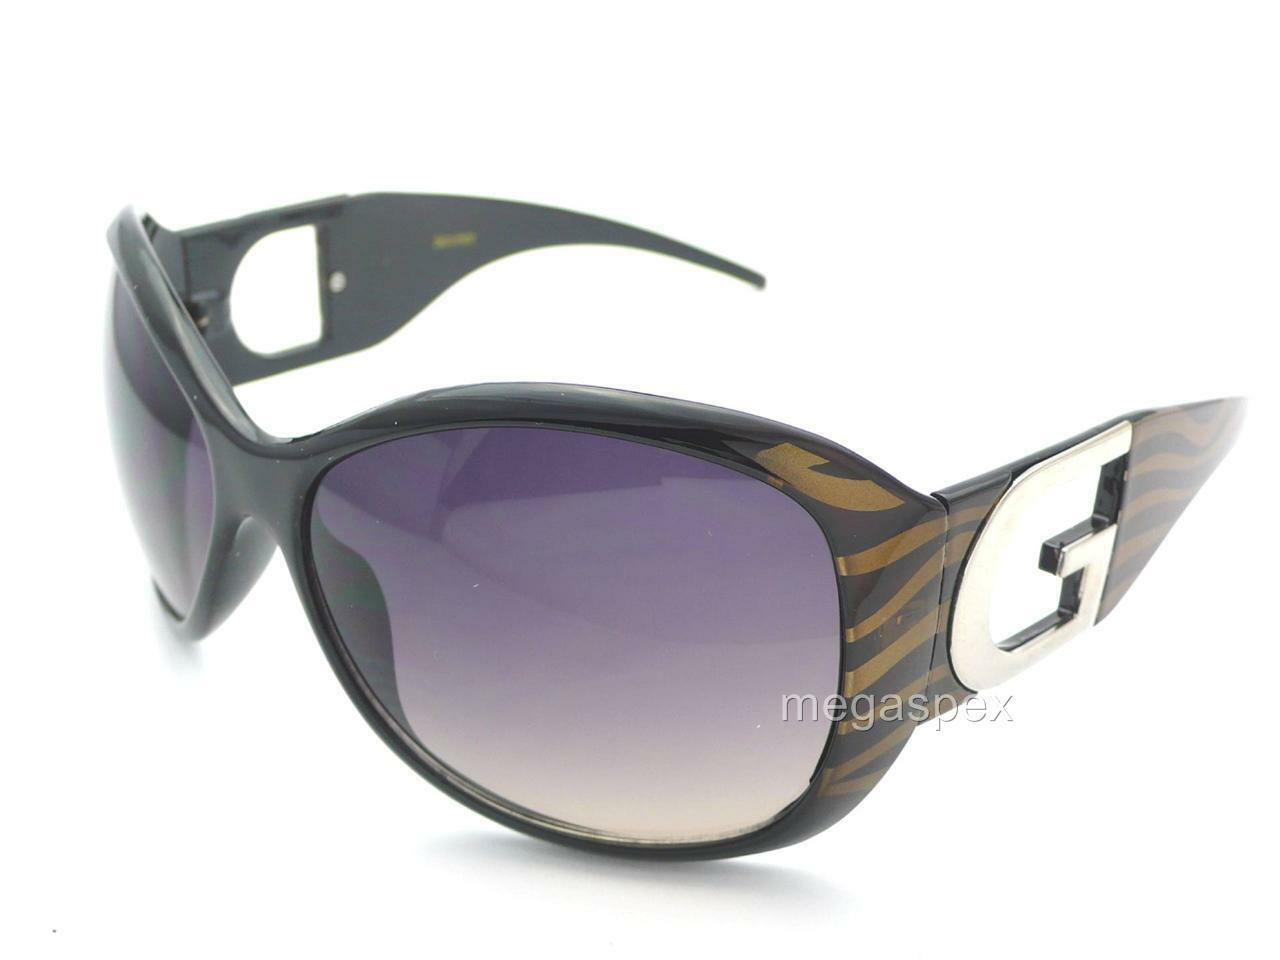 b91fa241f7a0 Designer Celebrity Style Large Womens Sunglasses assorted Colours DG 155